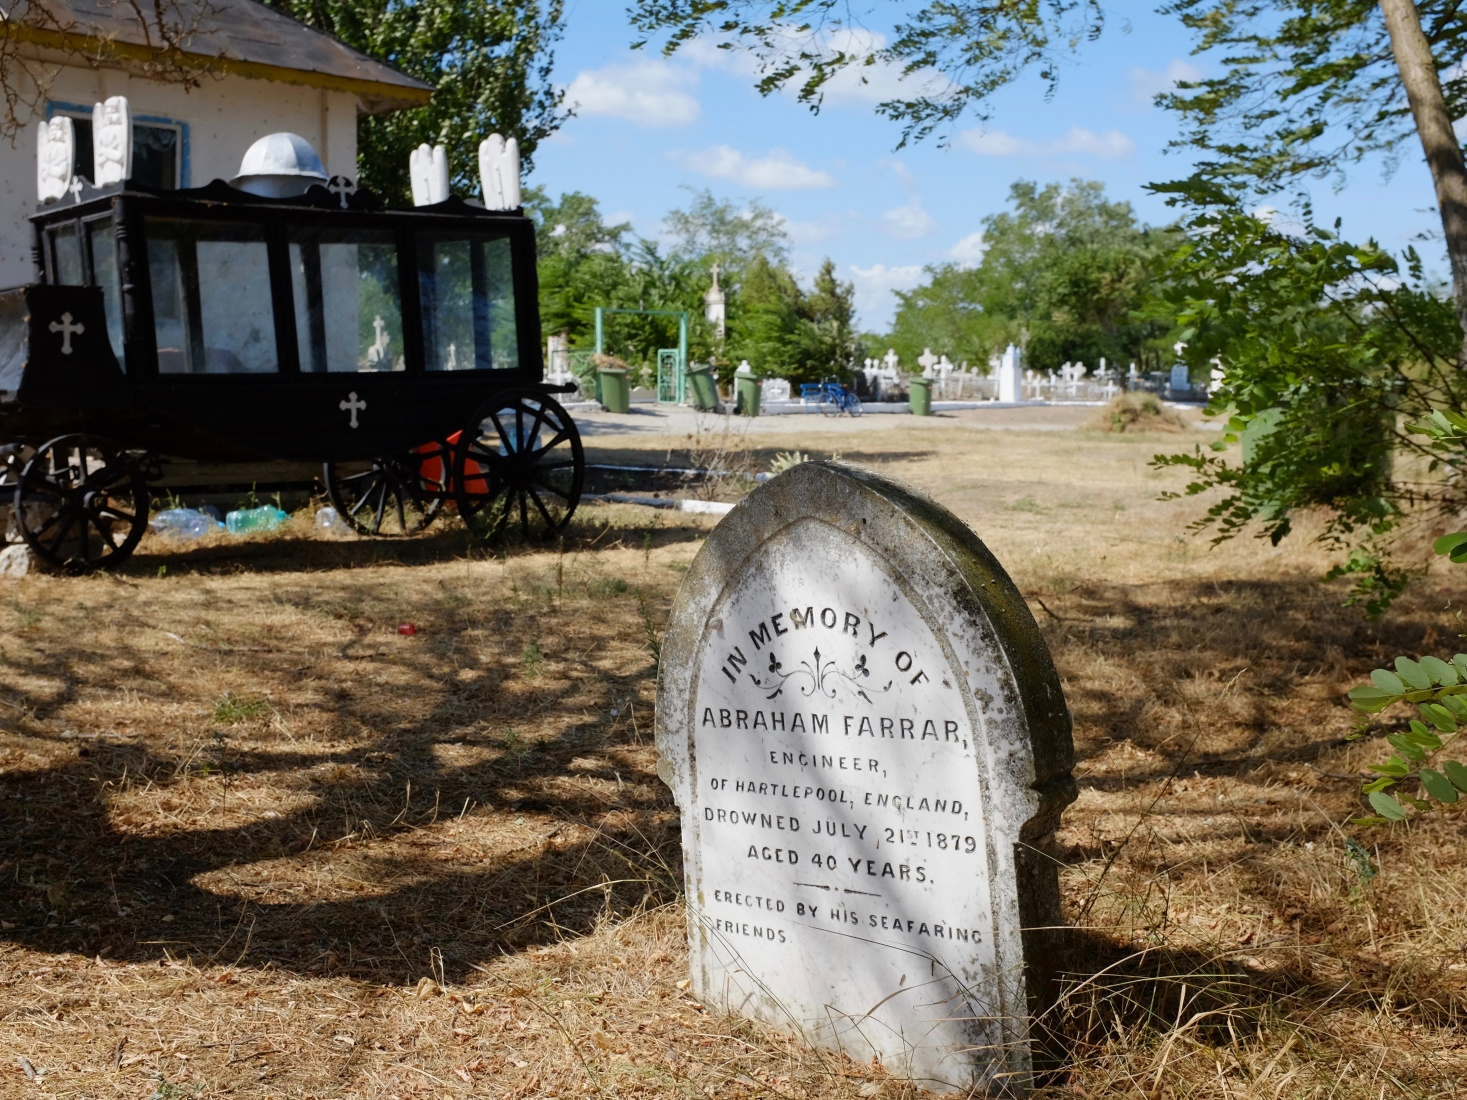 The gravemarker of Abraham Farrar of Hartlepool, England. One of several British subjects buried at Sulina, Romania.